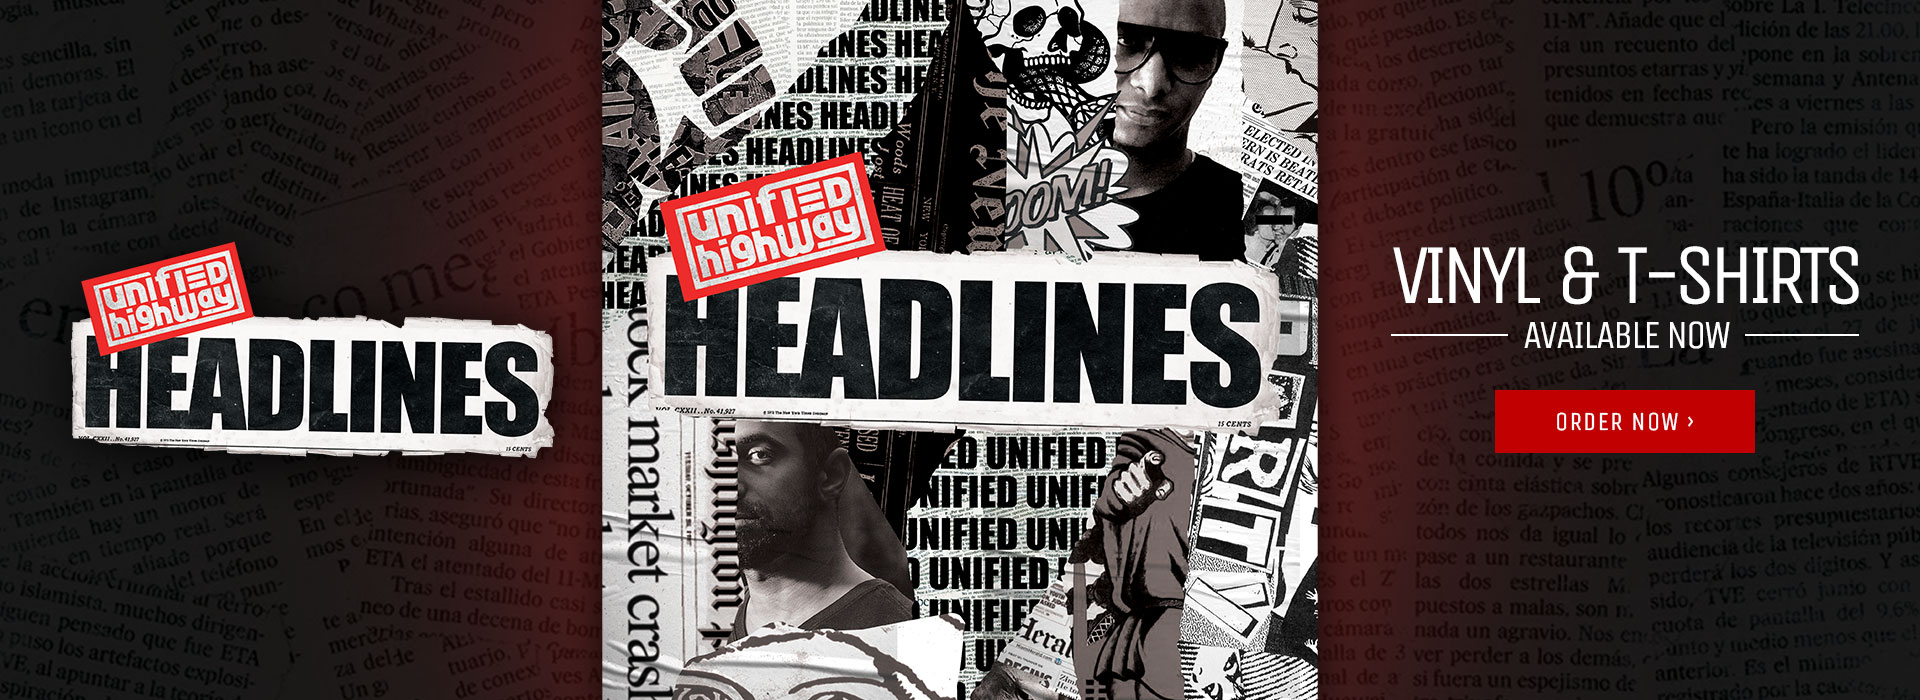 Unified Highway's Headlines available now.